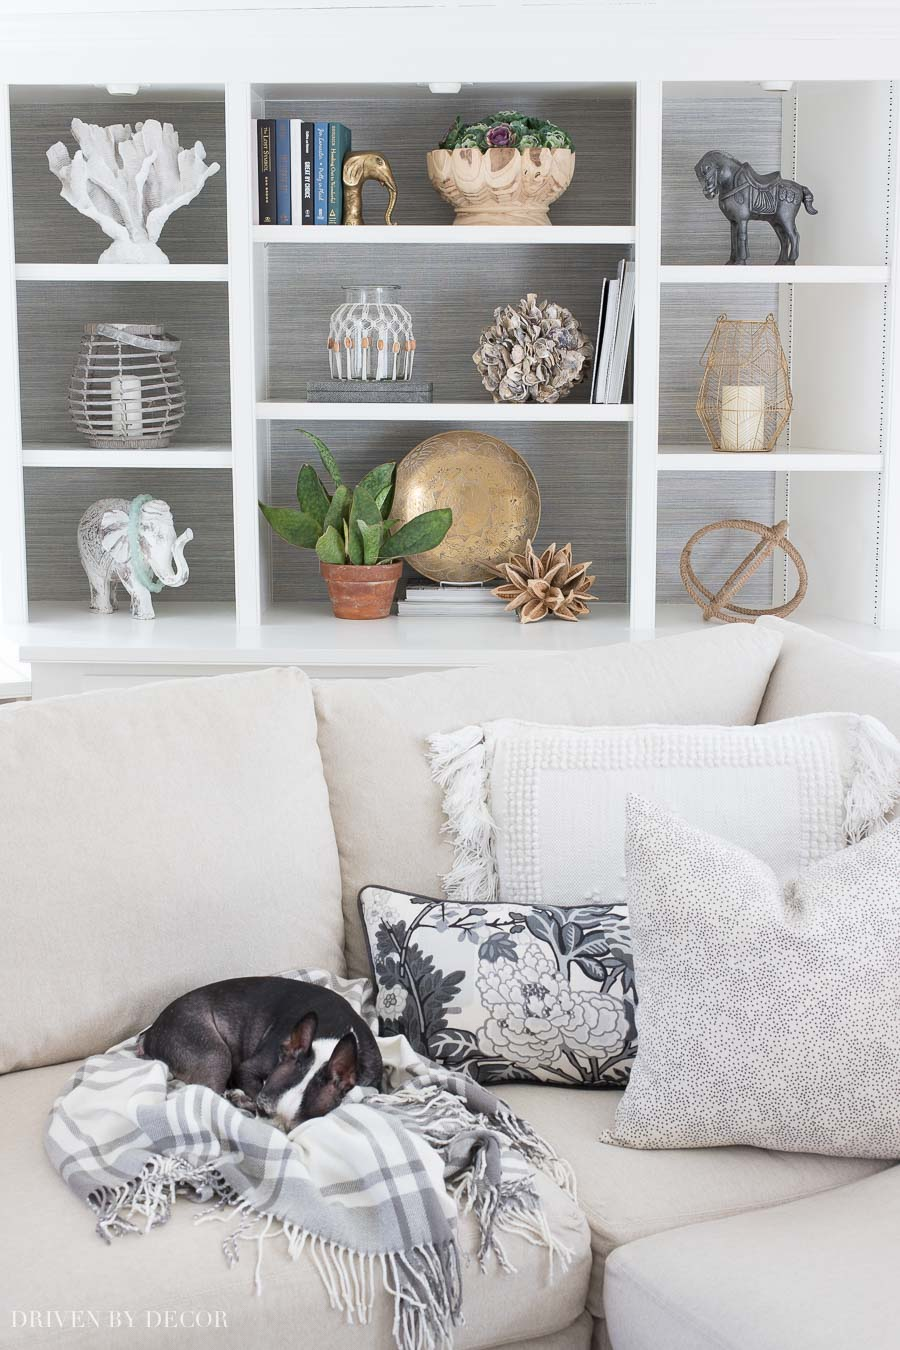 How To Decorate Shelves & Bookcases: Simple Formulas That Work